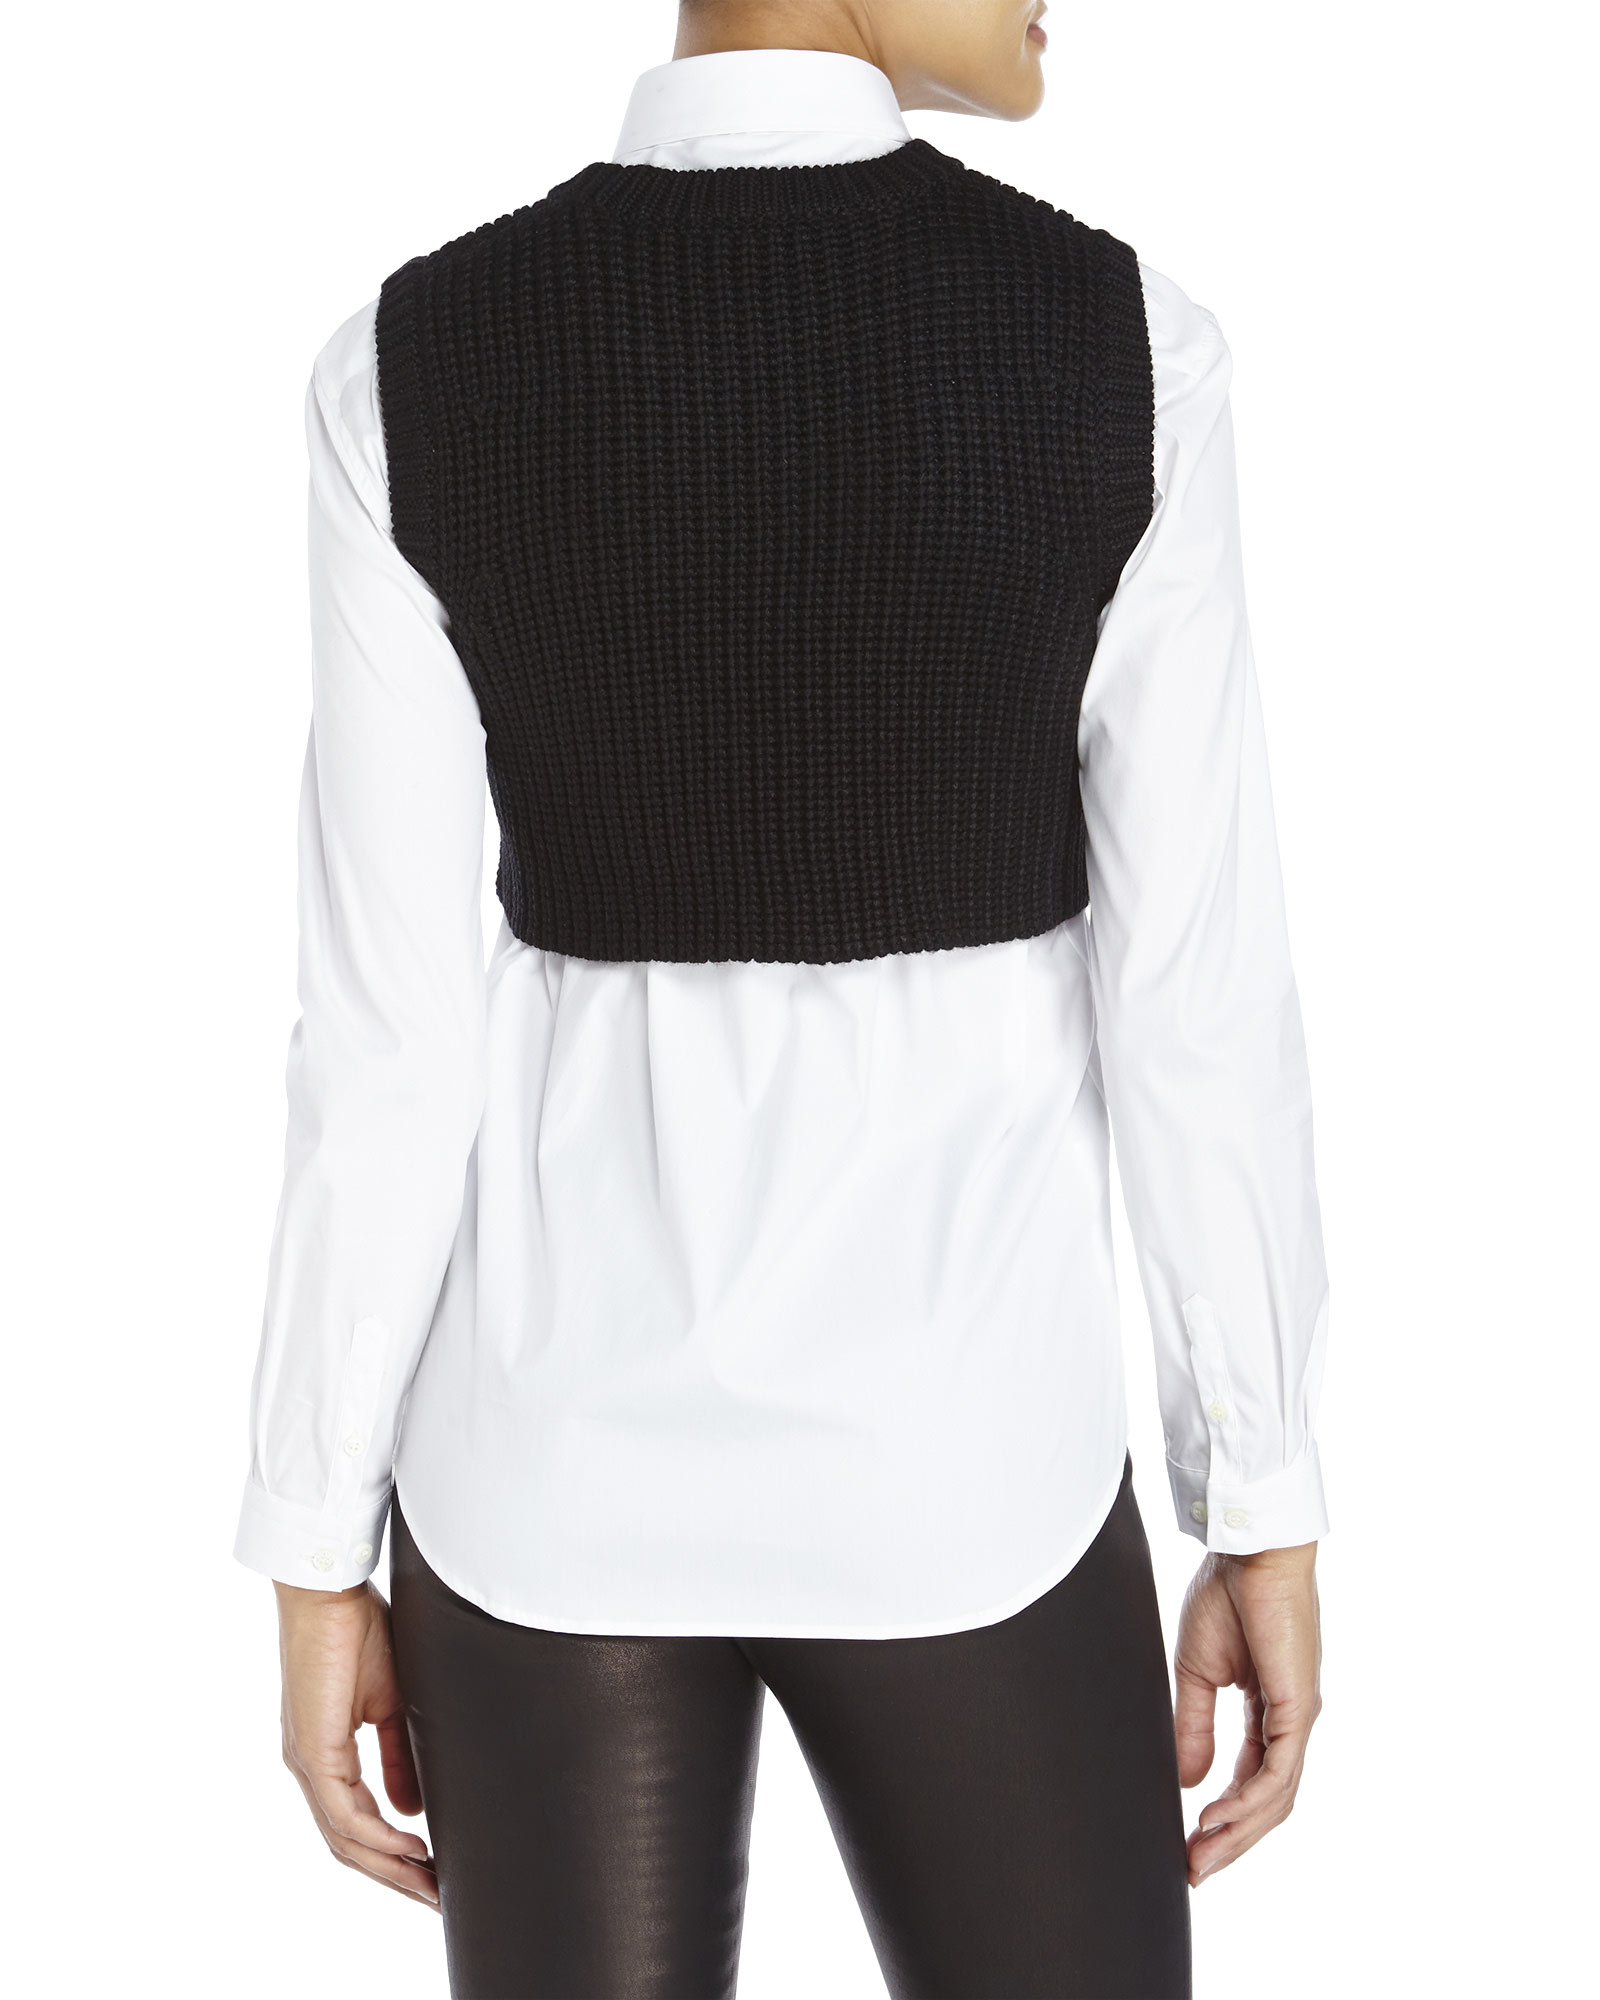 Neil barrett Sleeveless Crop Sweater in Black | Lyst